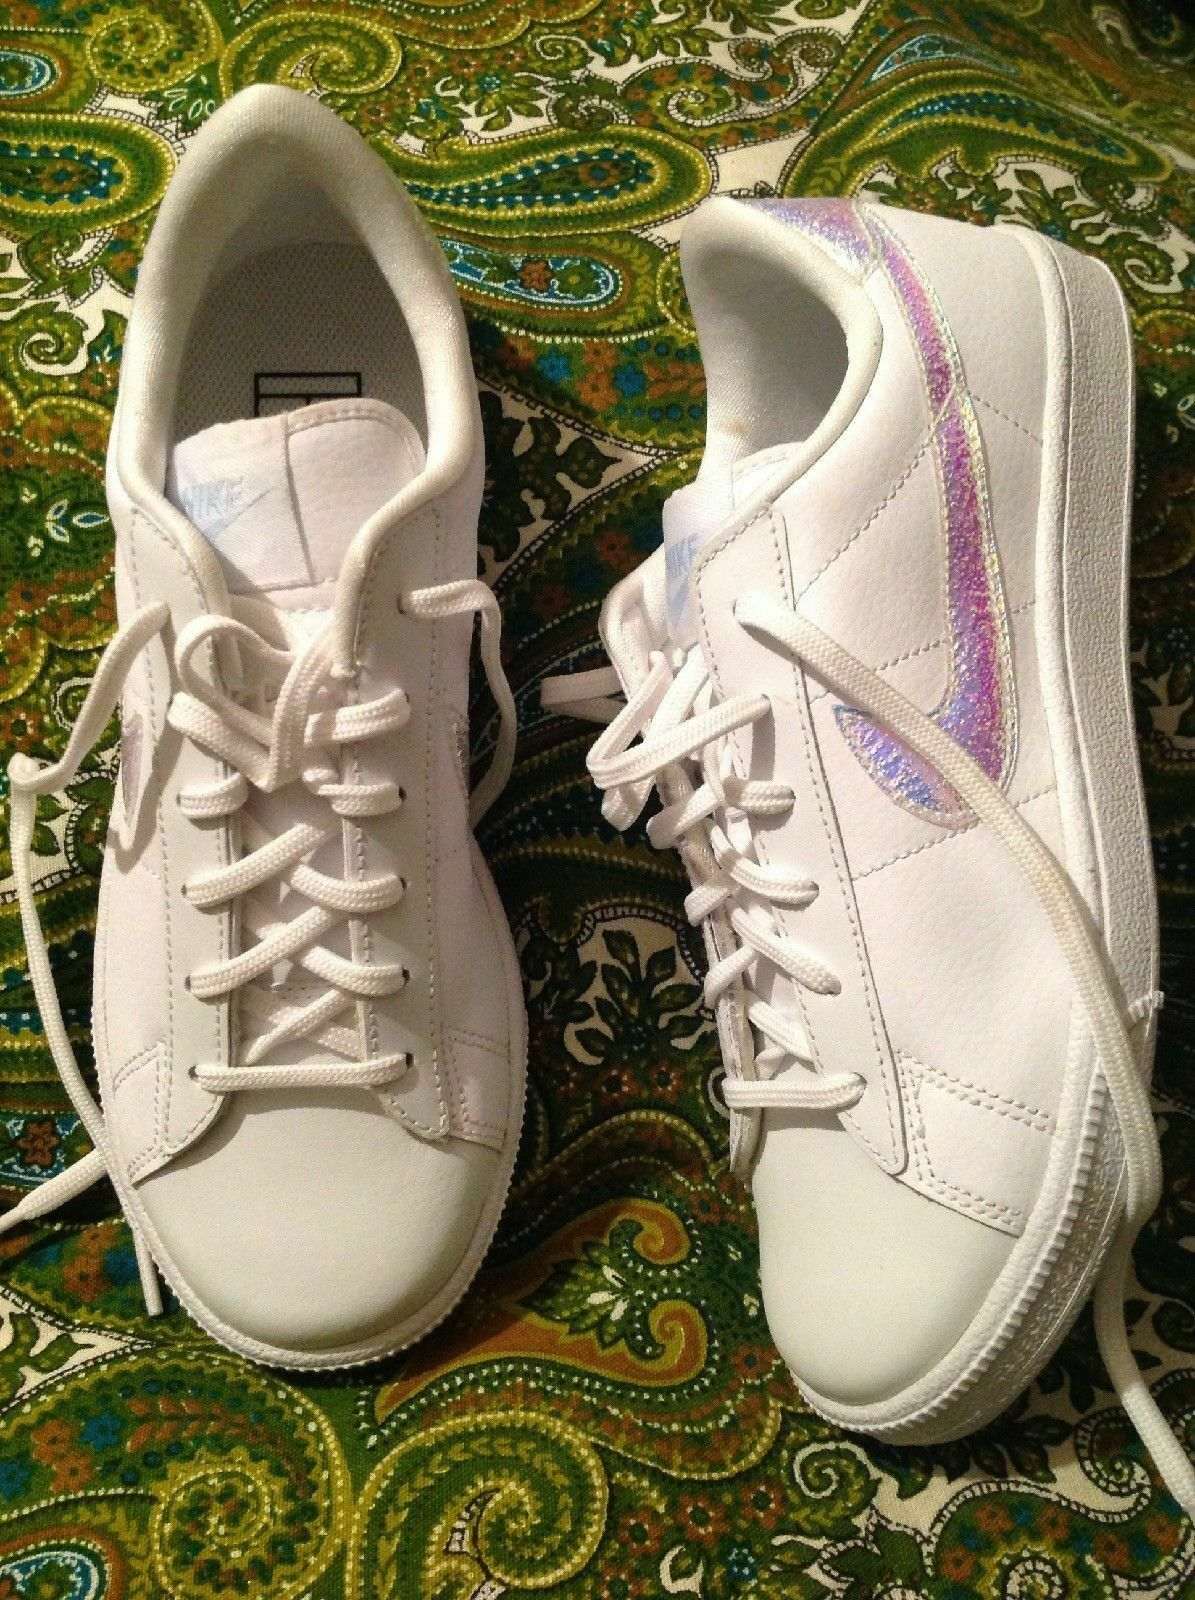 NEW NIKE 844940-100 WOMEN'S 7M WHITE LEATHER LOW IRRIDESCENT SWOOSH SNEAKERS